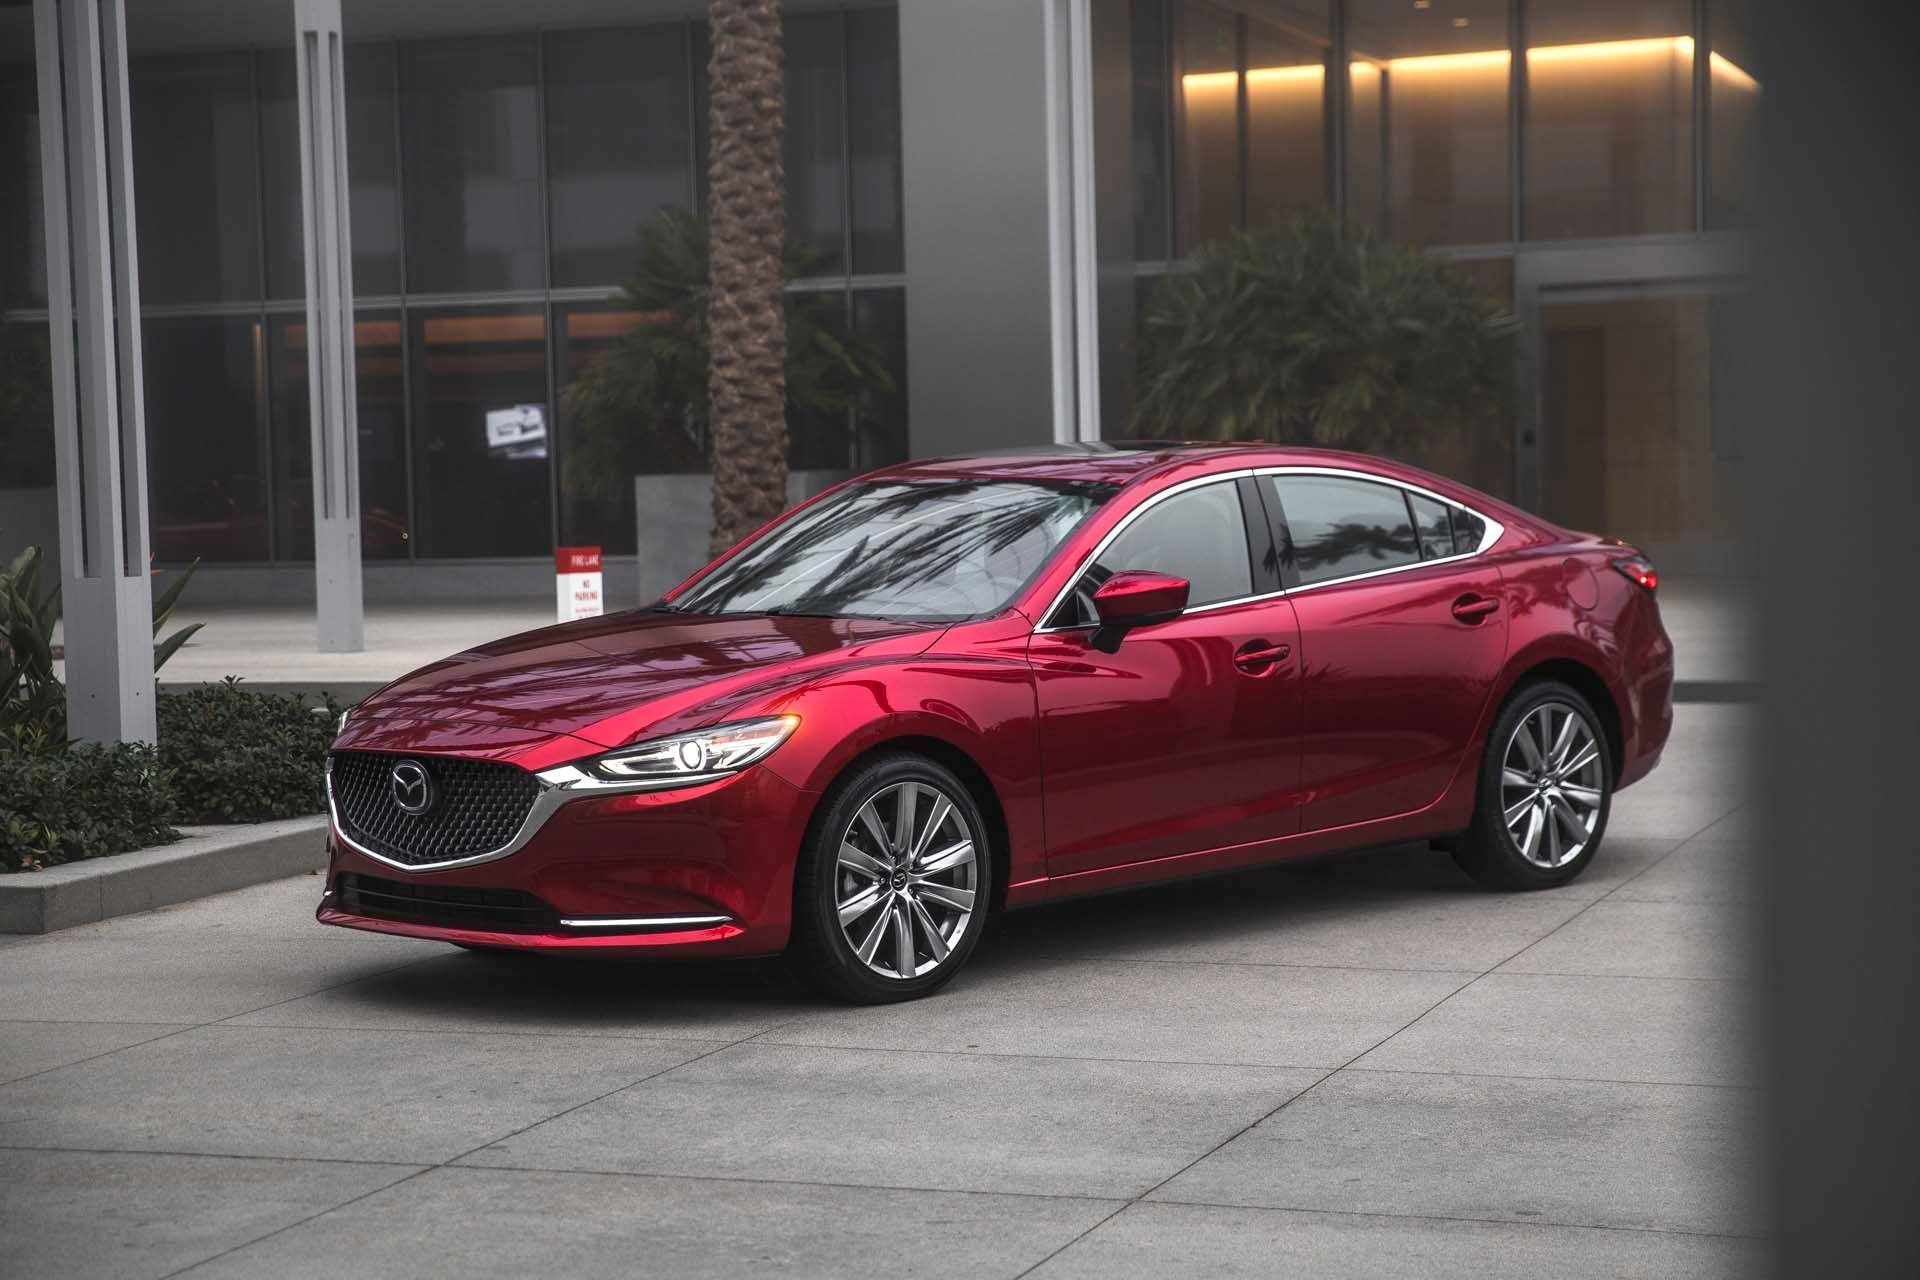 New 2019 Mazda-Mazda6 Grand Touring Reserve Mazda6 Grand Touring Reserve for sale $32,000 at M and V Leasing in Brooklyn NY 11223 1